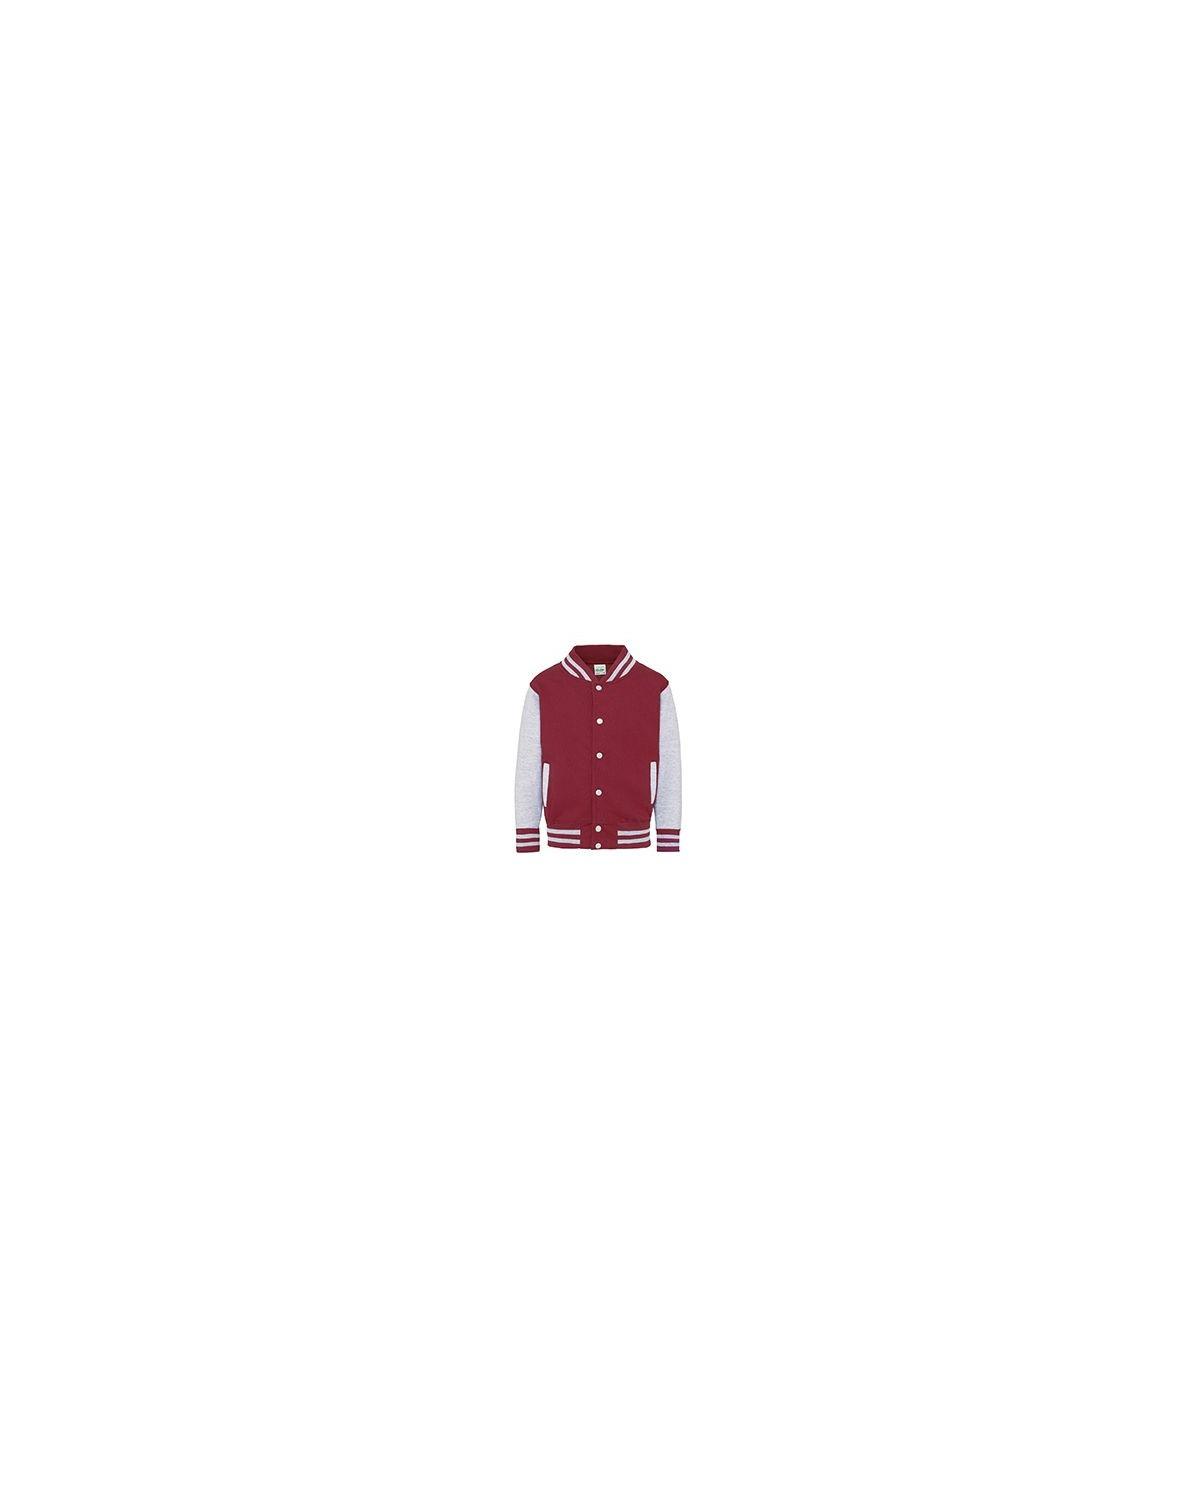 JHY043 Just Hoods By AWDis FIRE RD/ HTH GRY